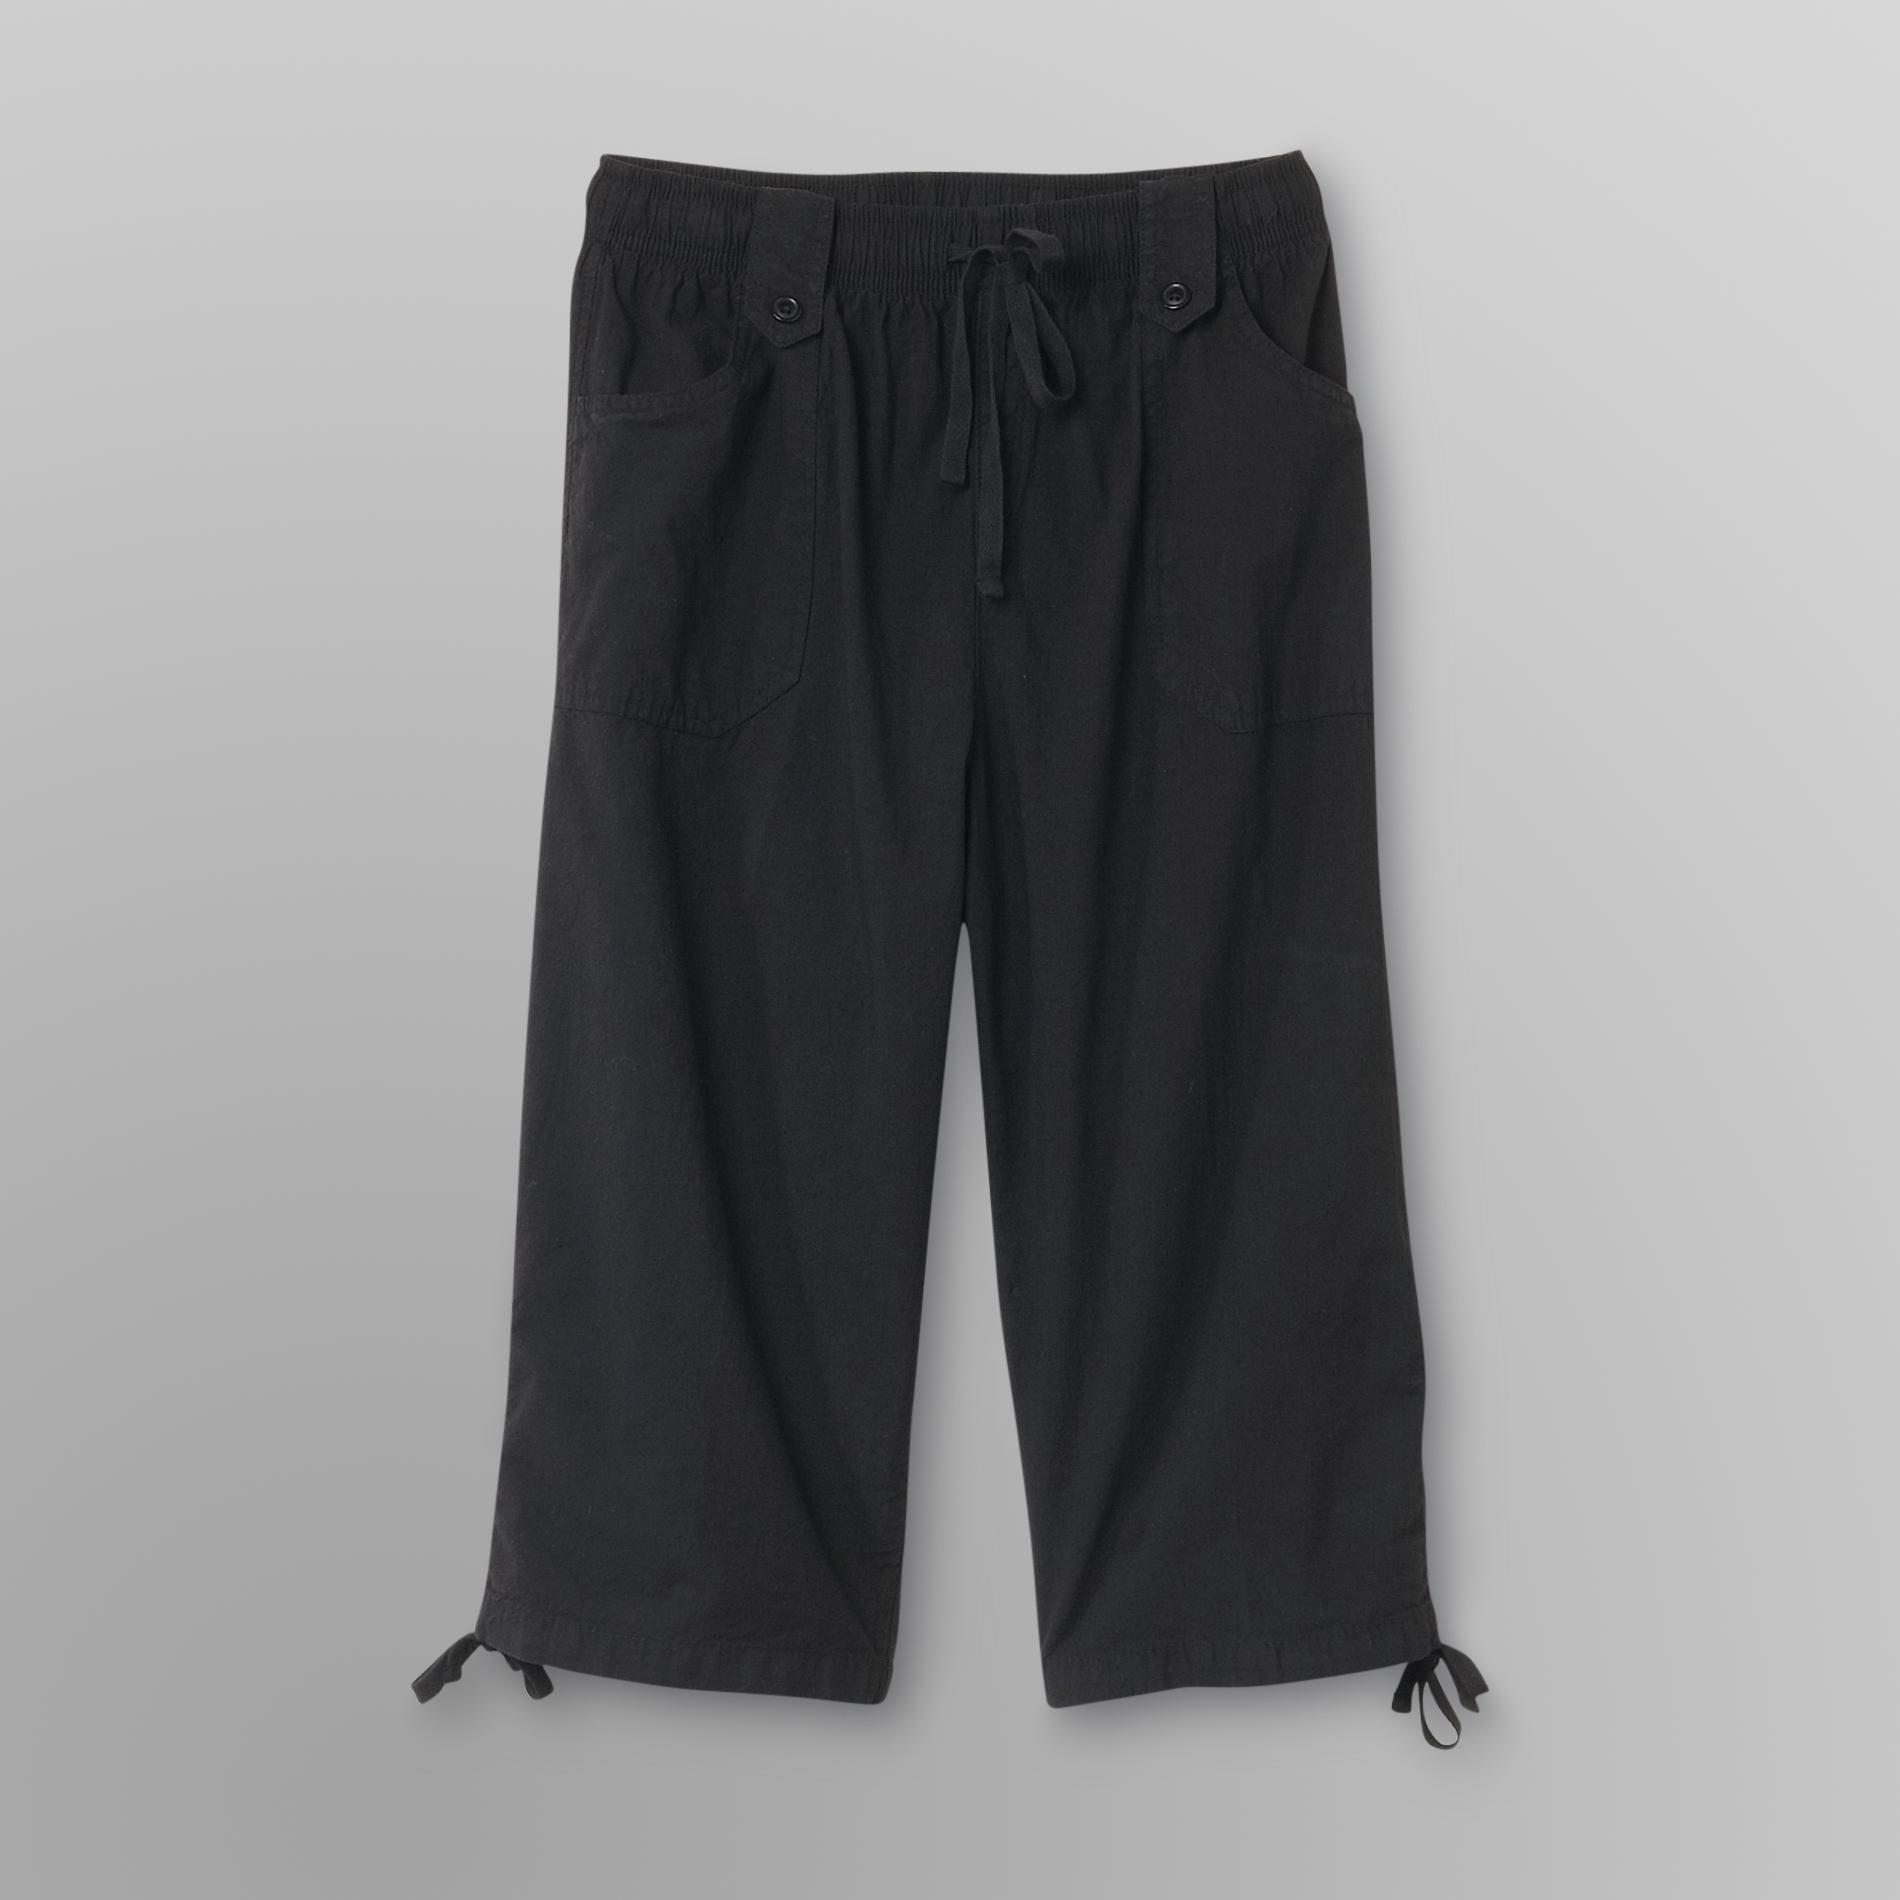 Erika Women's Cropped Pants at Sears.com